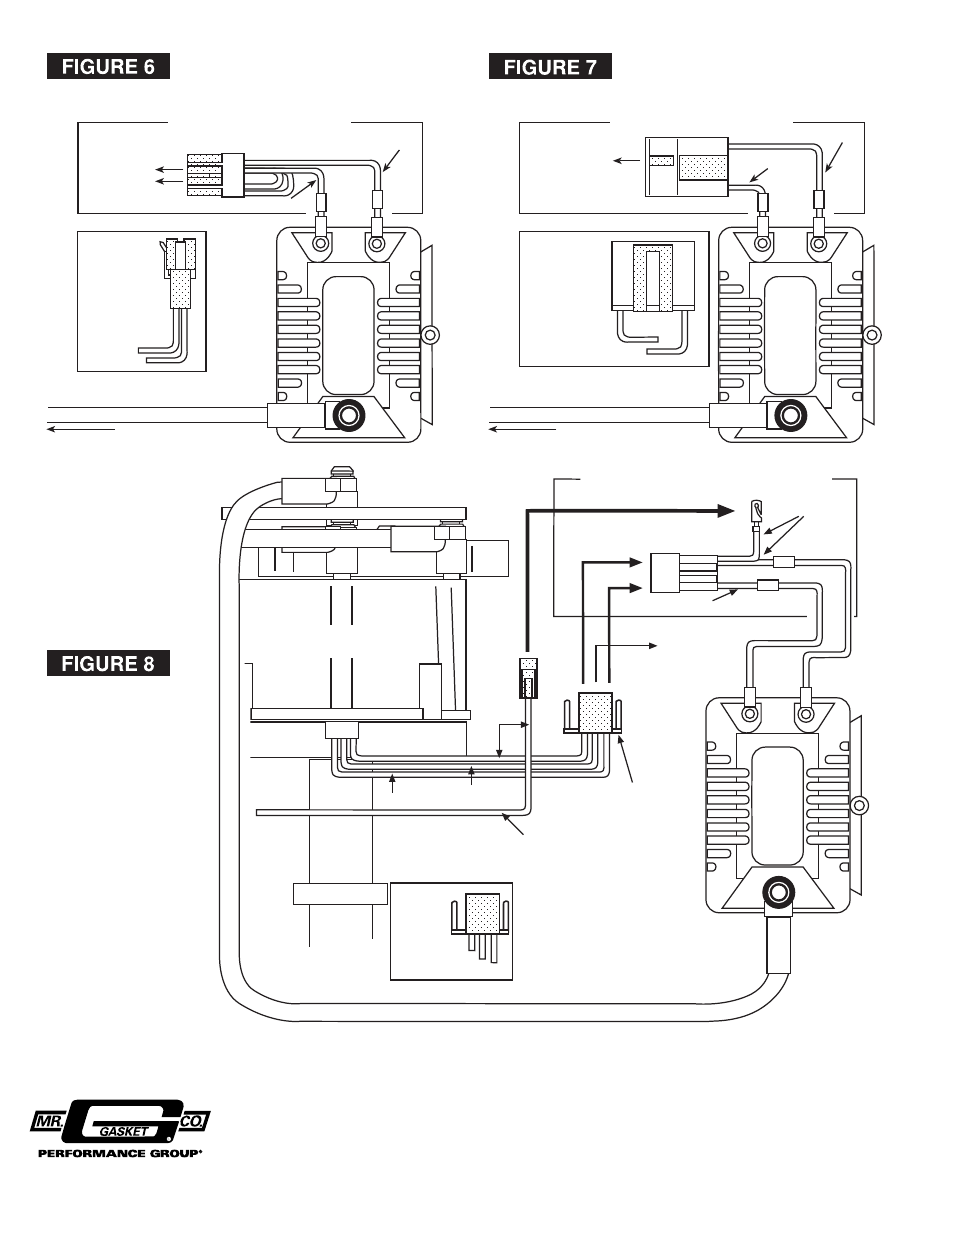 mallory ignition mallory promaster ignition coils and voltmaster mark ii ignition coils 28675_28720 page4 mallory ignition mallory promaster ignition coils and voltmaster mallory promaster coil wiring diagram at crackthecode.co